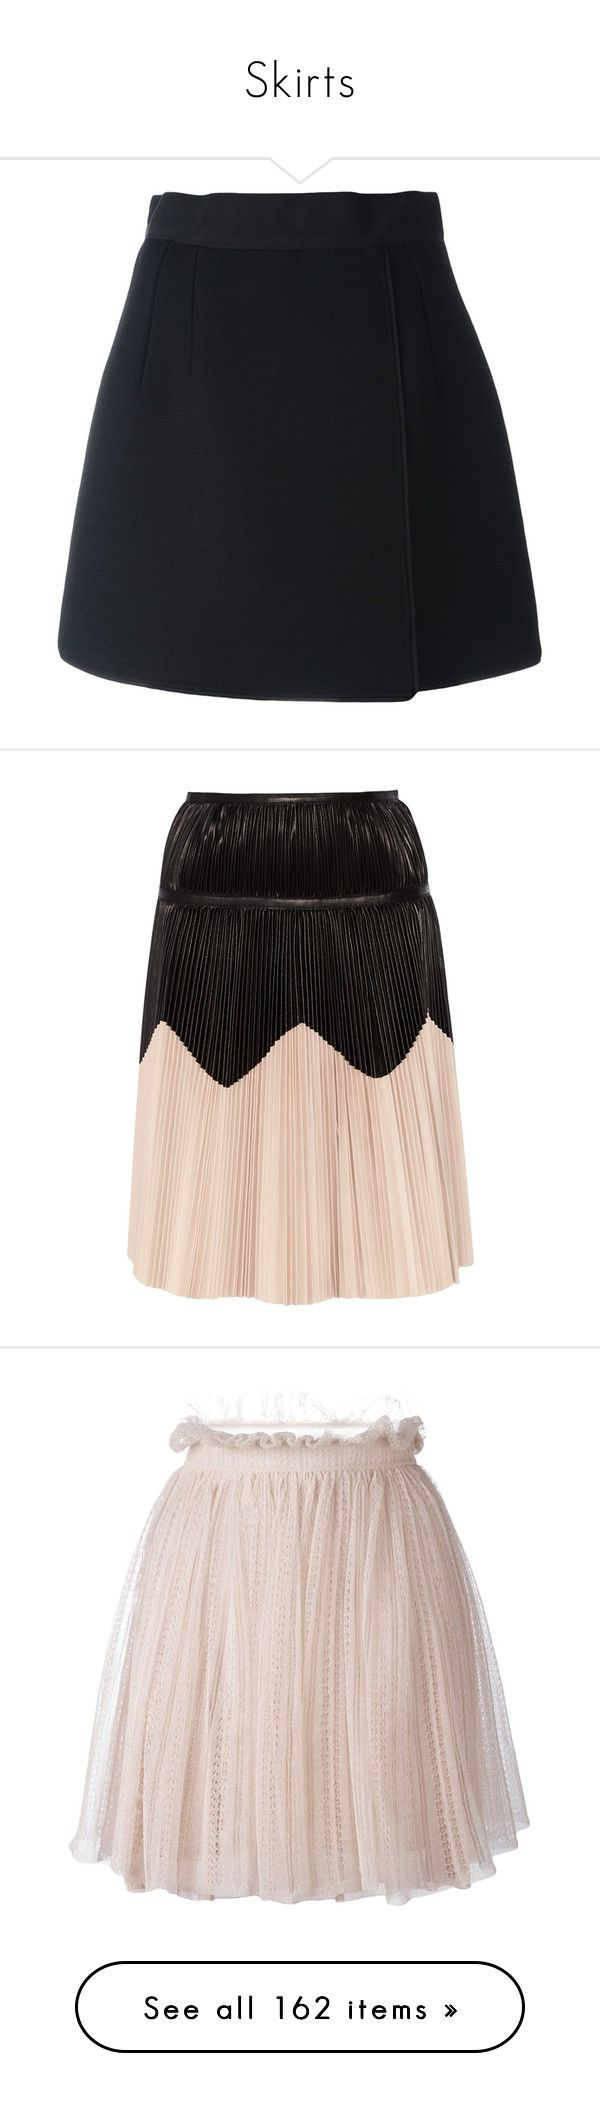 """Skirts"" by lavwichi ❤ liked on Polyvore featuring skirts, black, high waisted short skirts, high-waist skirt, high waisted a line skirt, a line mini skirt, high rise skirts, alexander mcqueen skirt, pleated skirt and structured skirt"